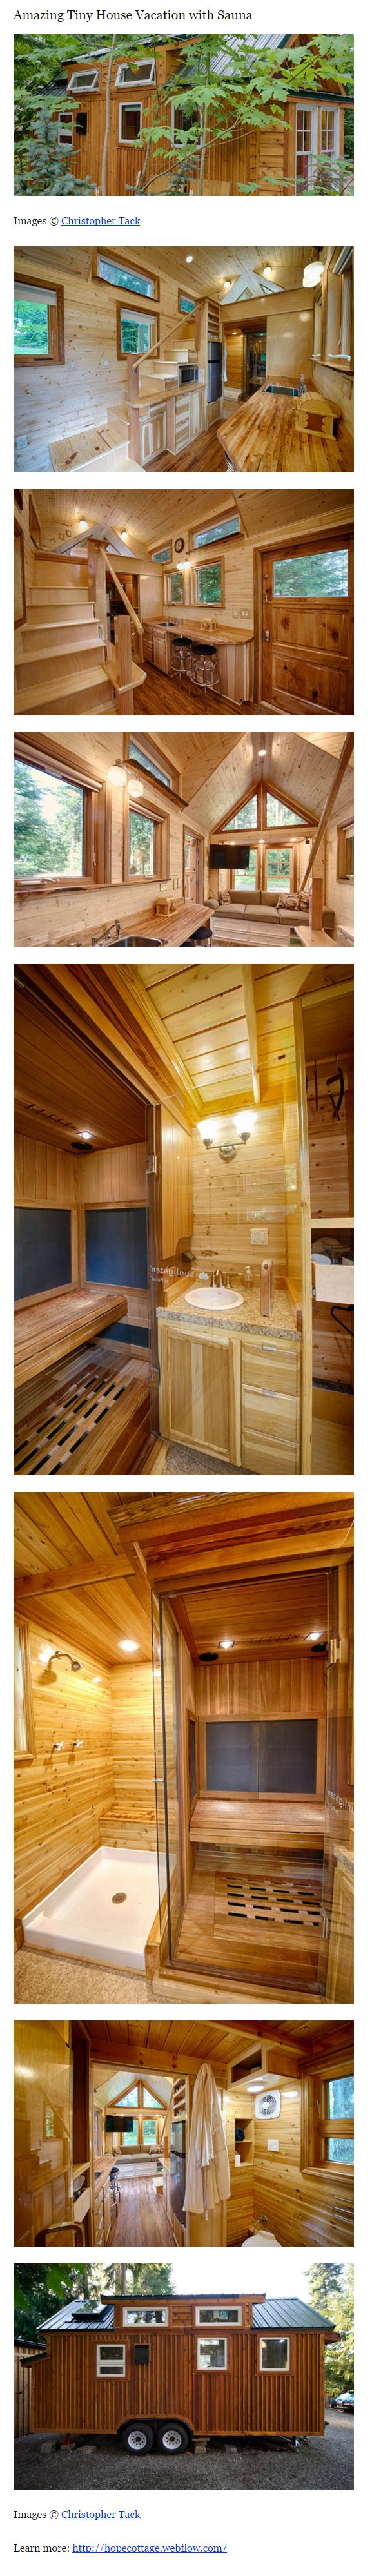 373 best 600 sq ft or less living images on pinterest small amazing tiny house vacation with sauna http tinyhousetalk com amazing